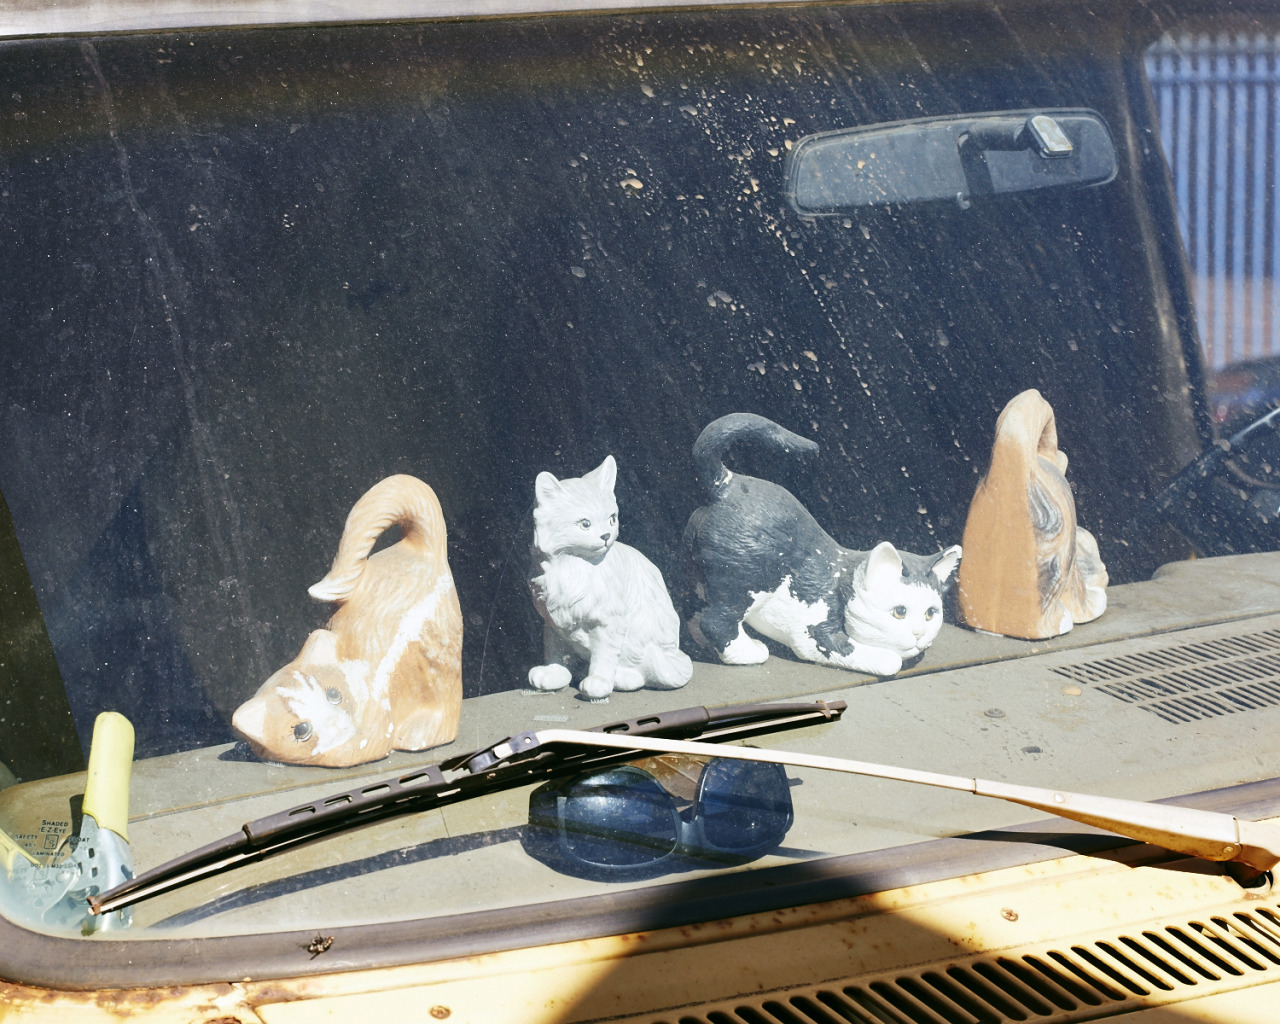 Cats on the dash.